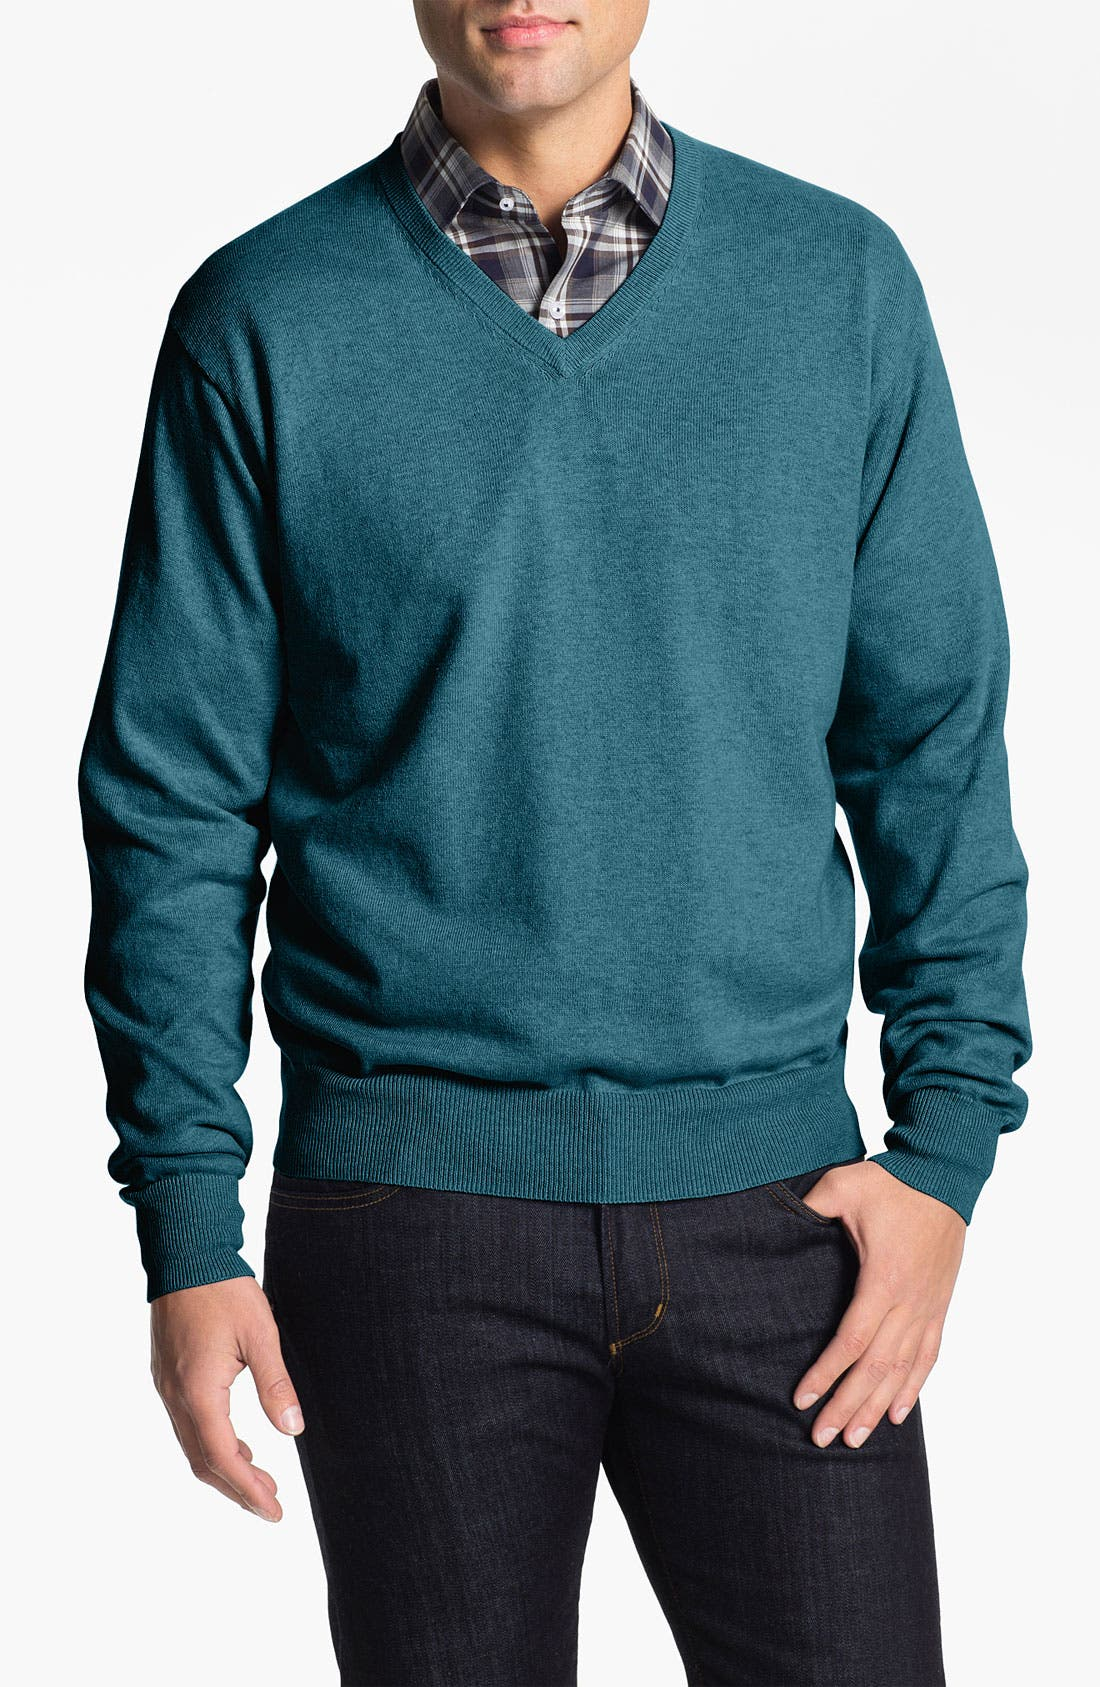 Alternate Image 1 Selected - Peter Millar Cotton & Cashmere V-Neck Sweater